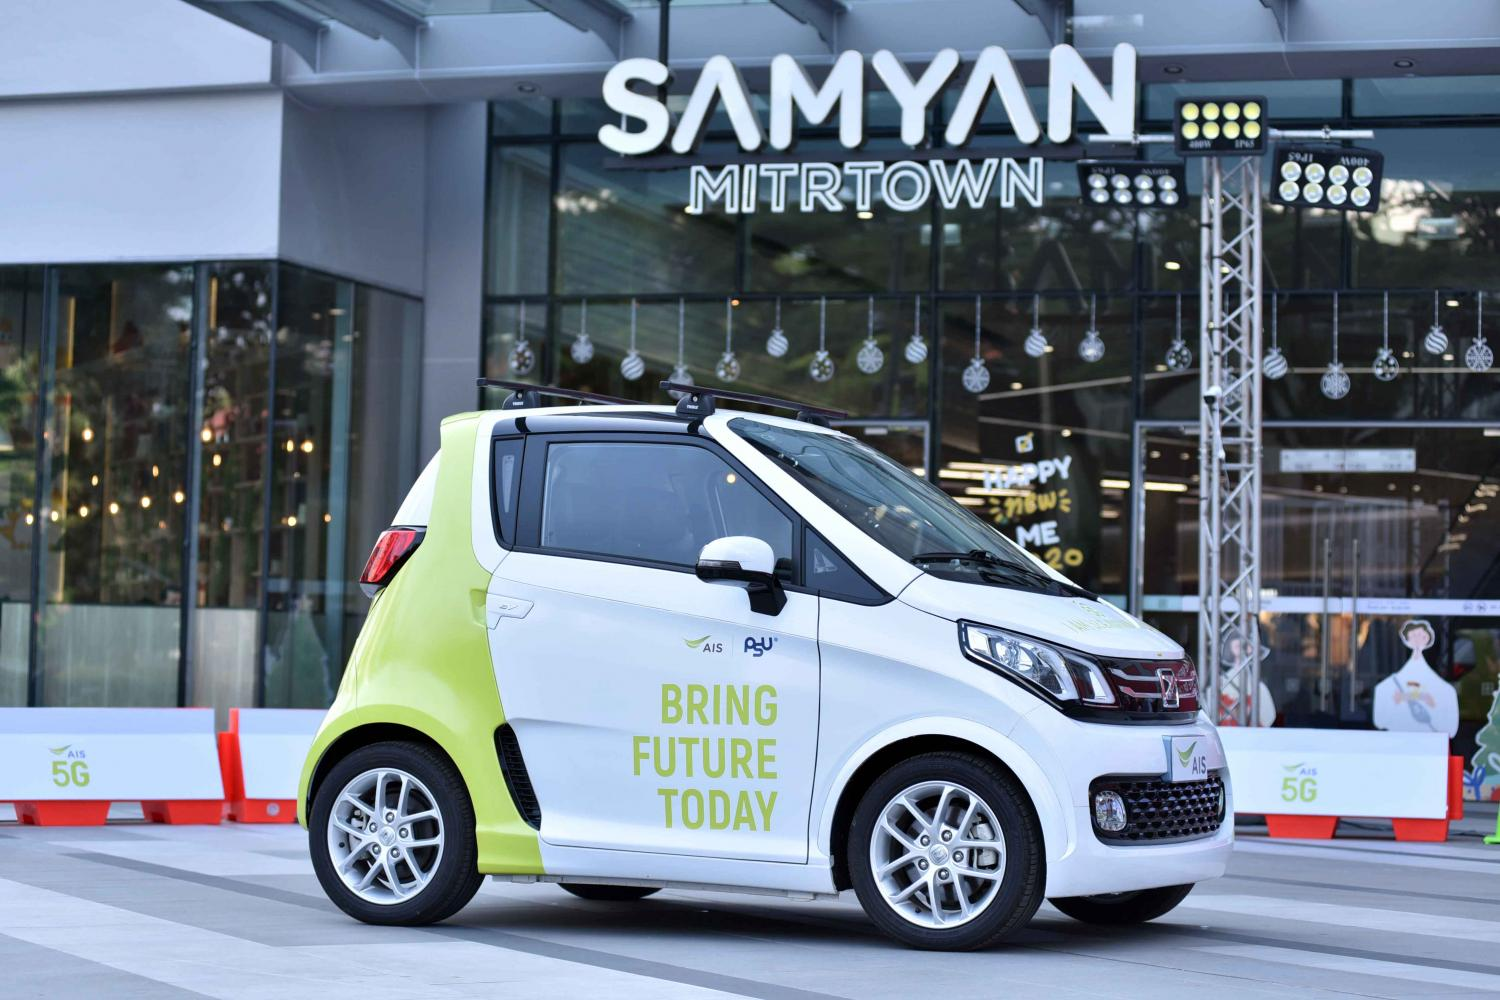 A remote driverless car is tested in front of Samyan Mitrtown yesterday. AIS is holding a 5G tech showcase until Jan 3 at the mall. Tharittawat Samejaidee